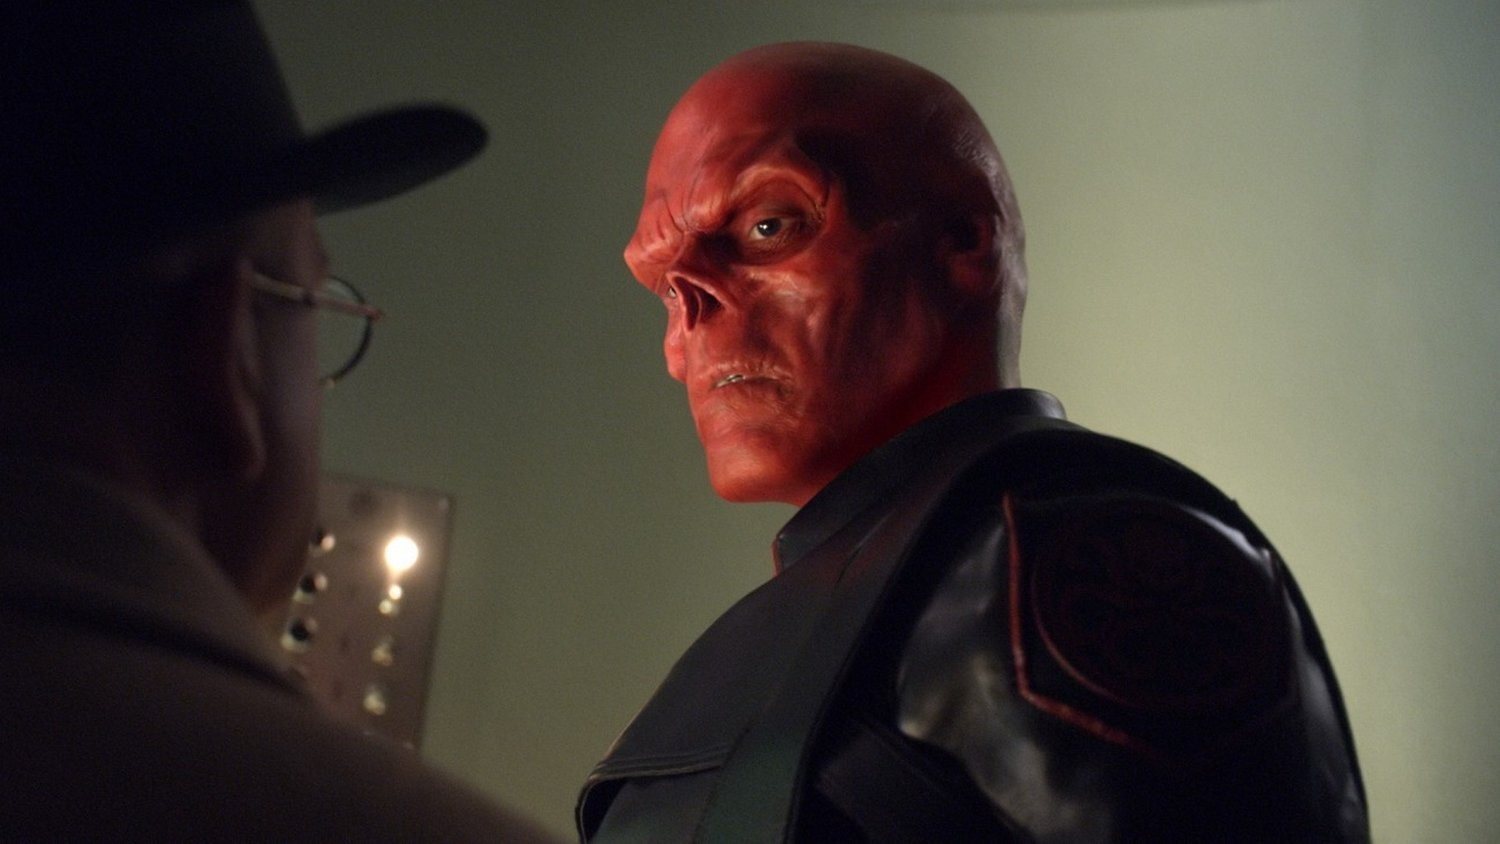 Samuel L. Jackson May Have Just Teased the Return of Red Skull in the MCU